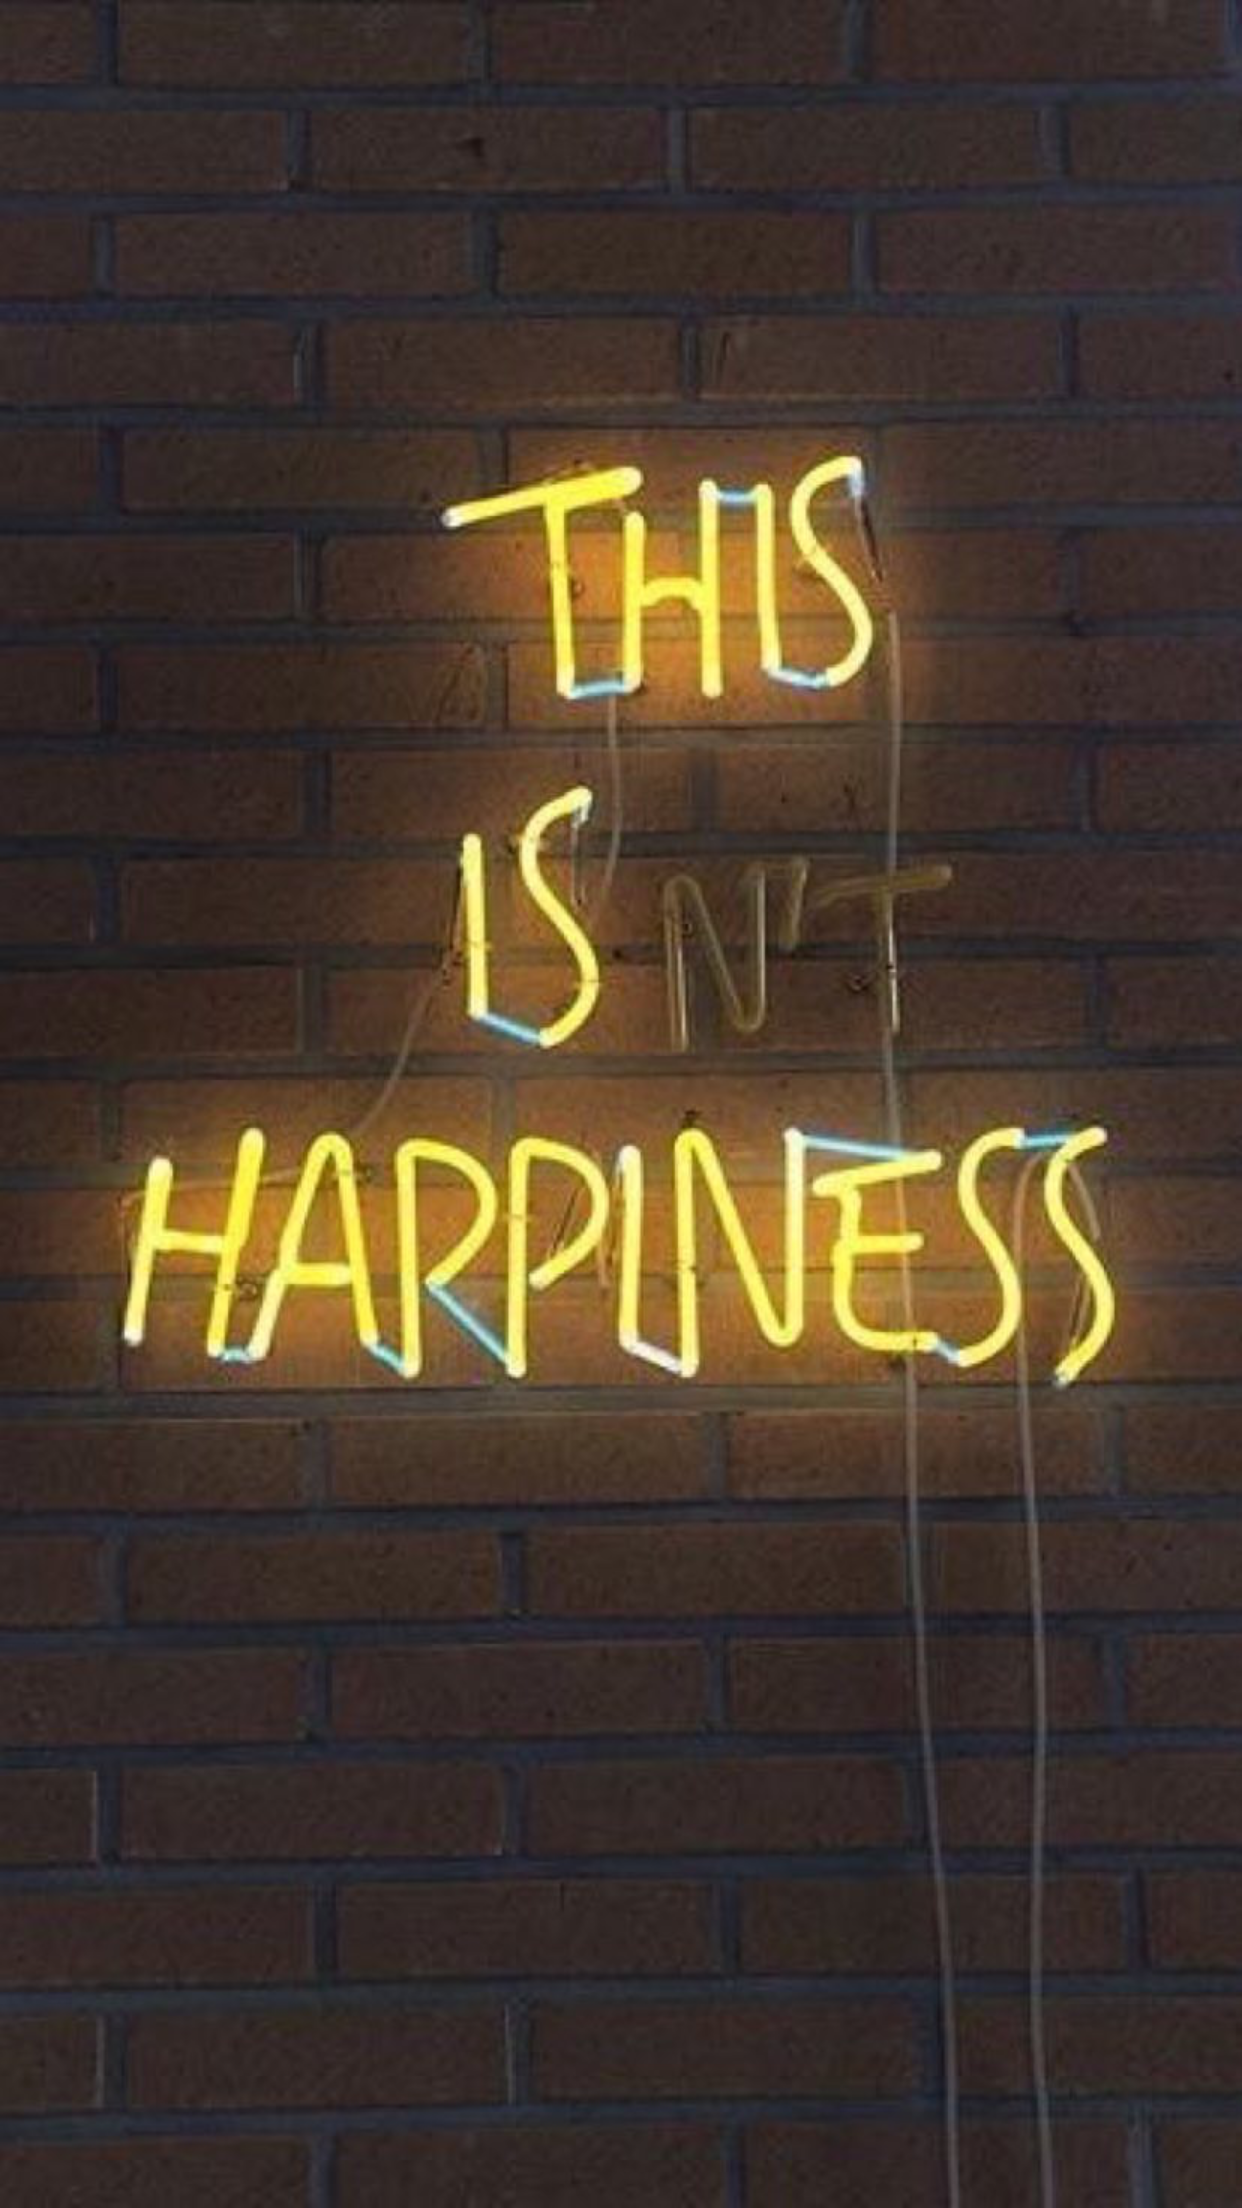 Pinterest Yasholo Ig Unreal Shakespeare Yellow Neonlights Happiness Neon Quotes Neon Wallpaper Neon Signs